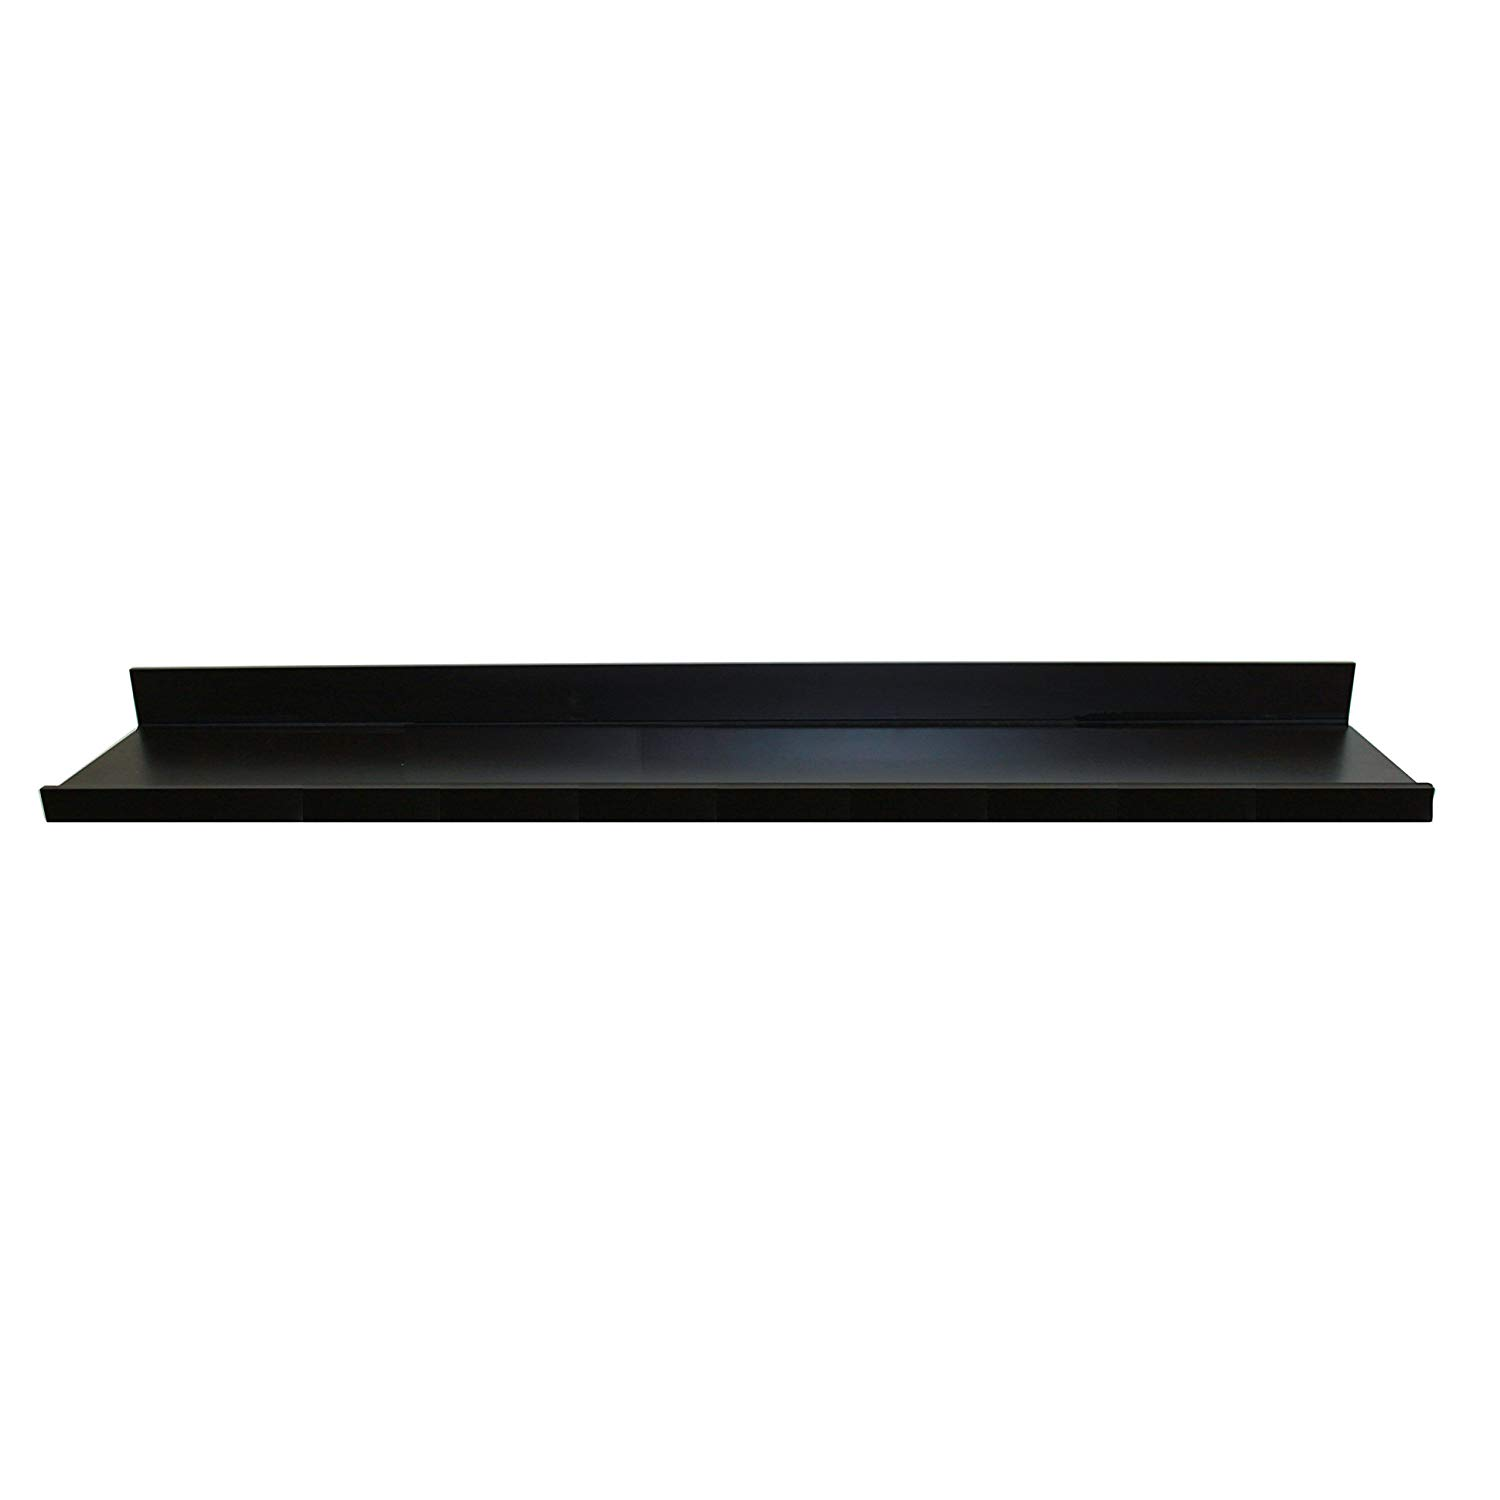 inplace shelving floating wall shelf with black for sky box ture ledge inch wide deep high home improvement ikea record storage small brackets styling open shelves niche glass are